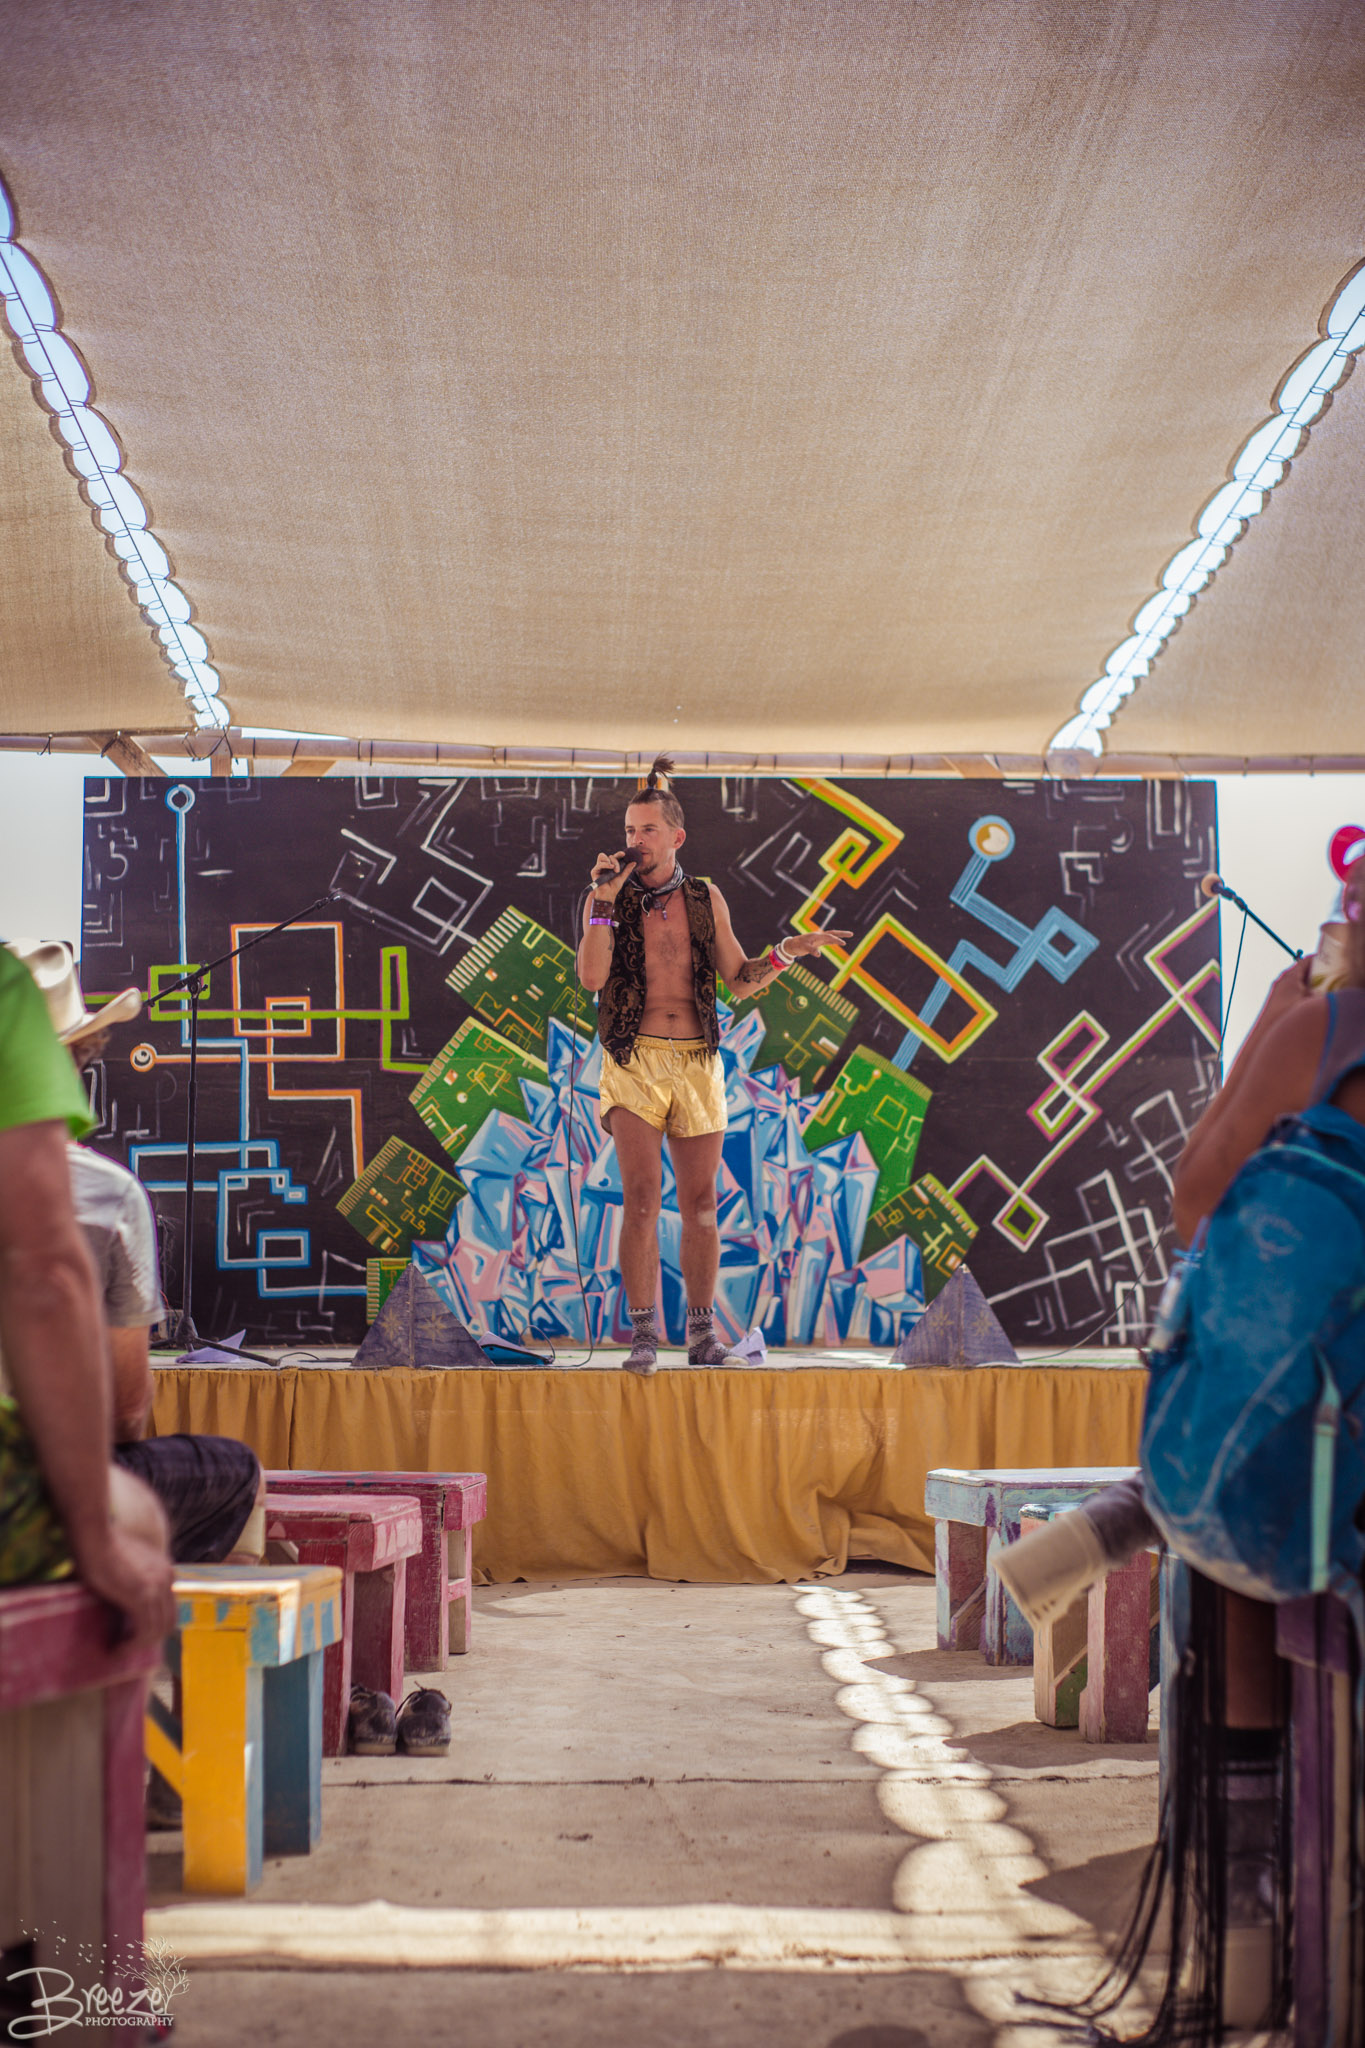 Brie'Ana Breeze Photography & Media - Burning Man 2018-4245.jpg